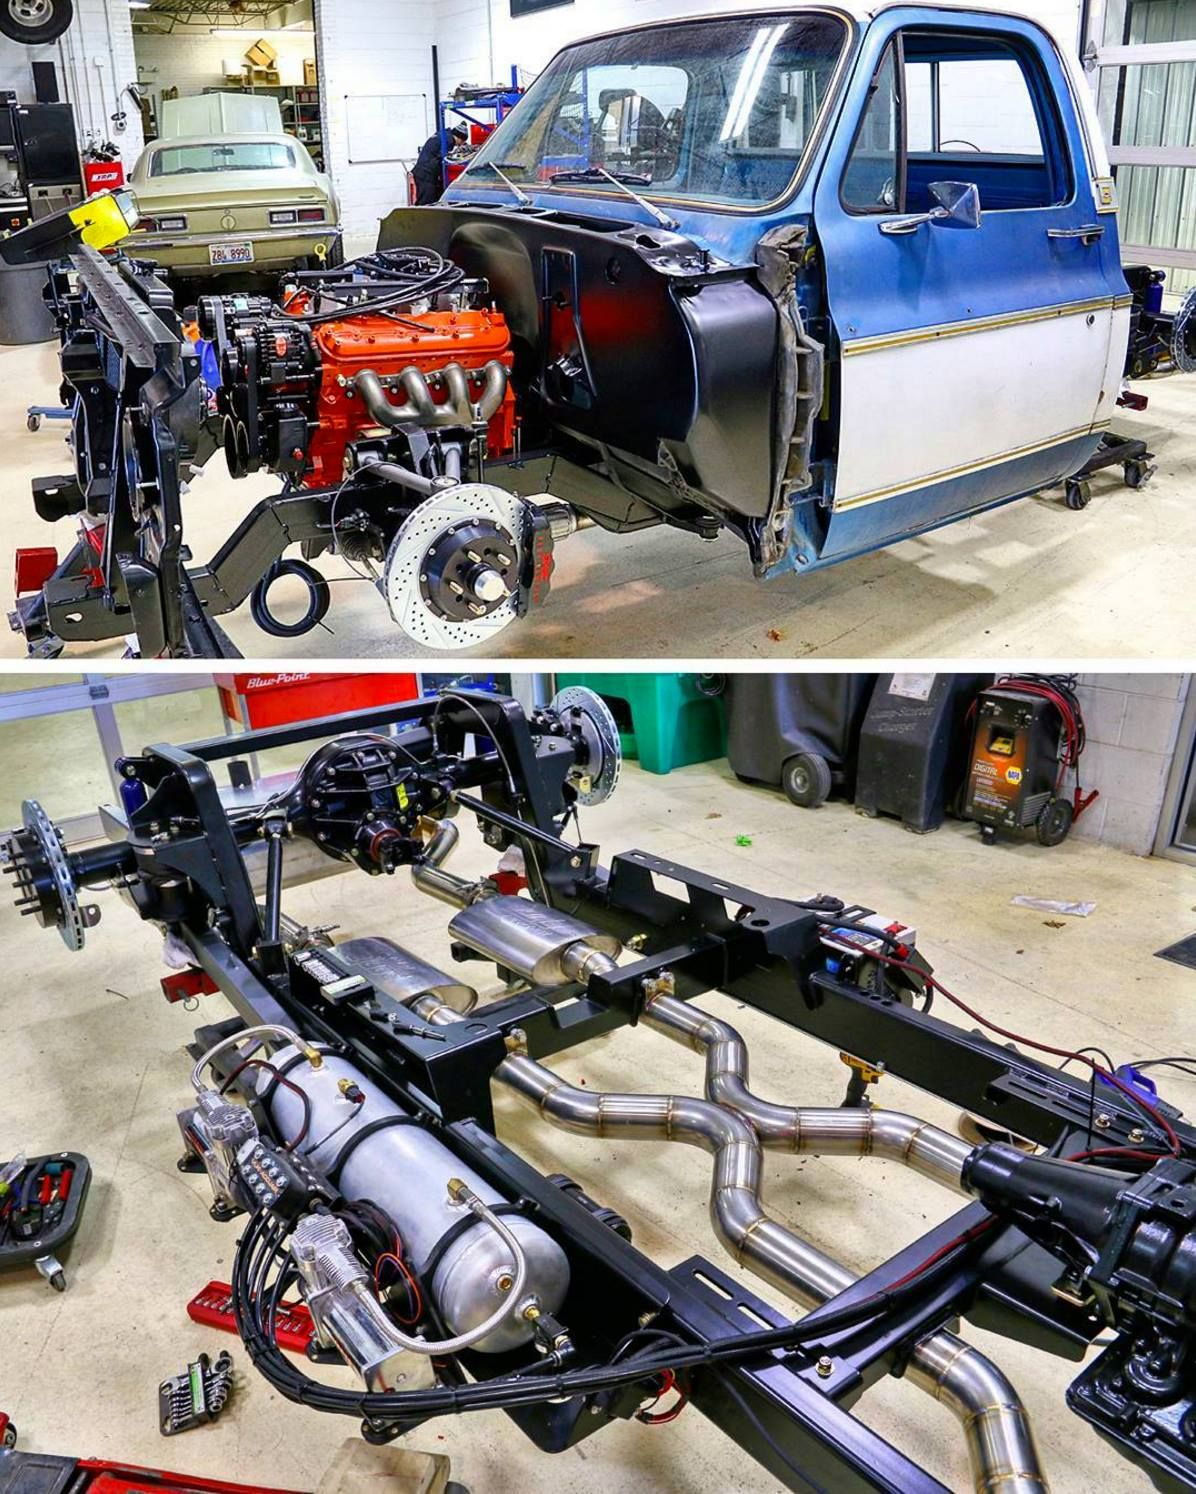 medium resolution of c notched c 10 with a nice rear end setup air compressor and a lot of other goodies